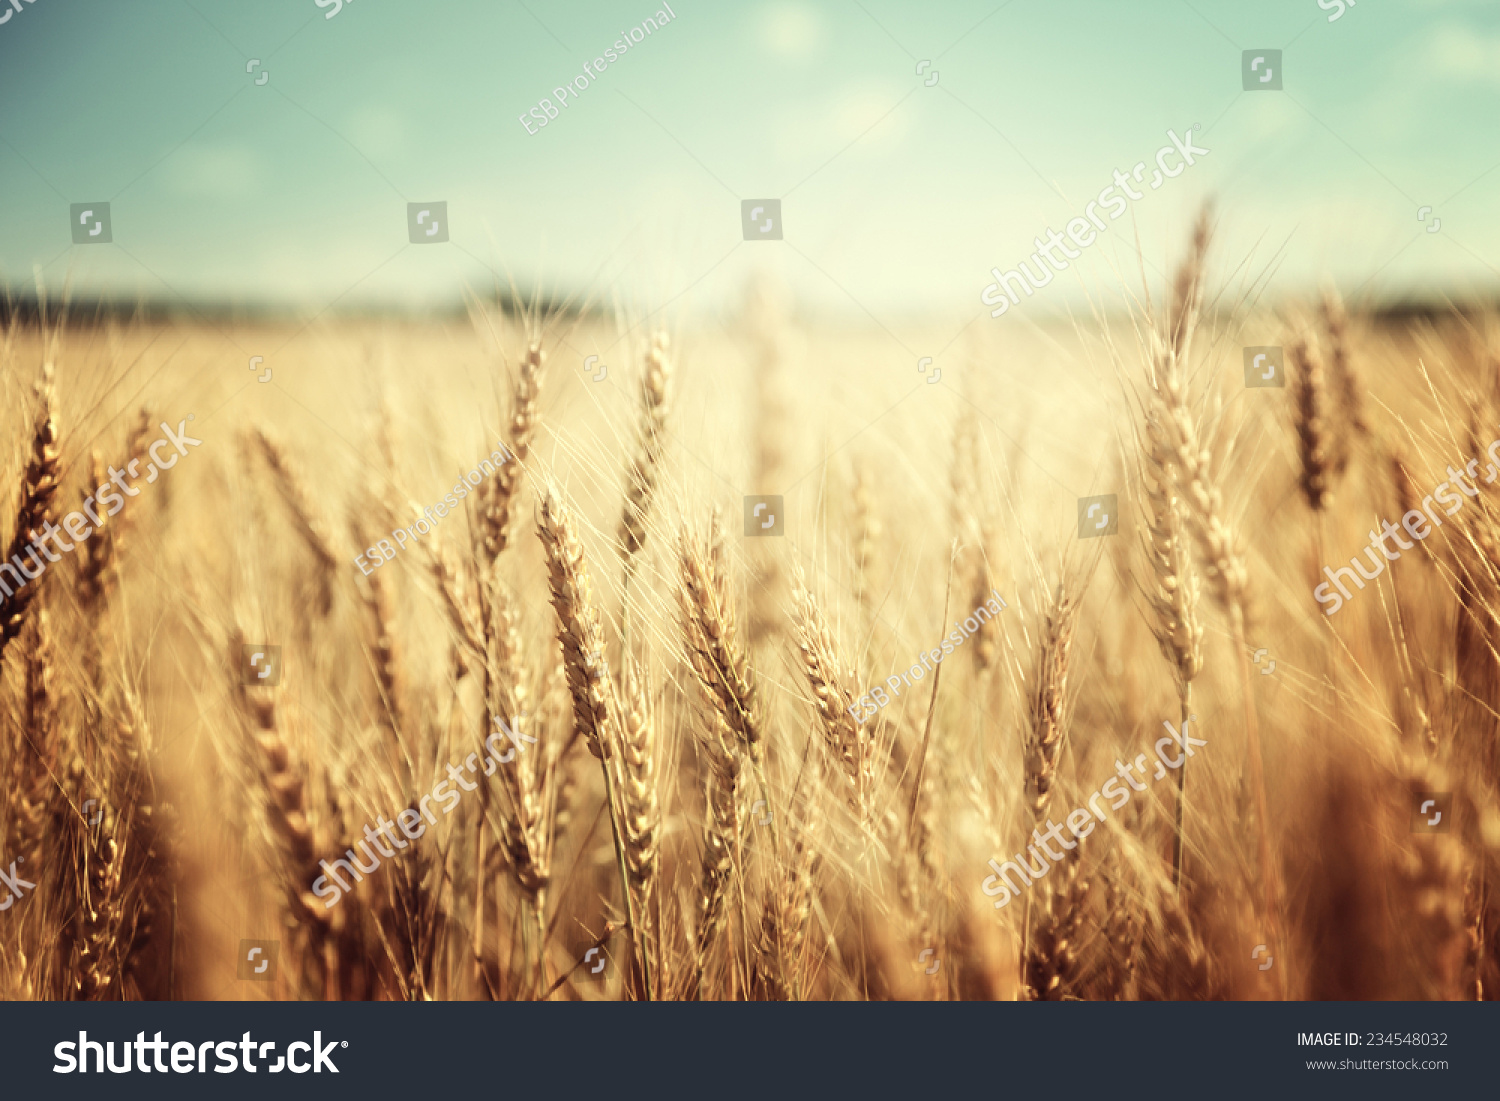 golden wheat field and sunny day #234548032